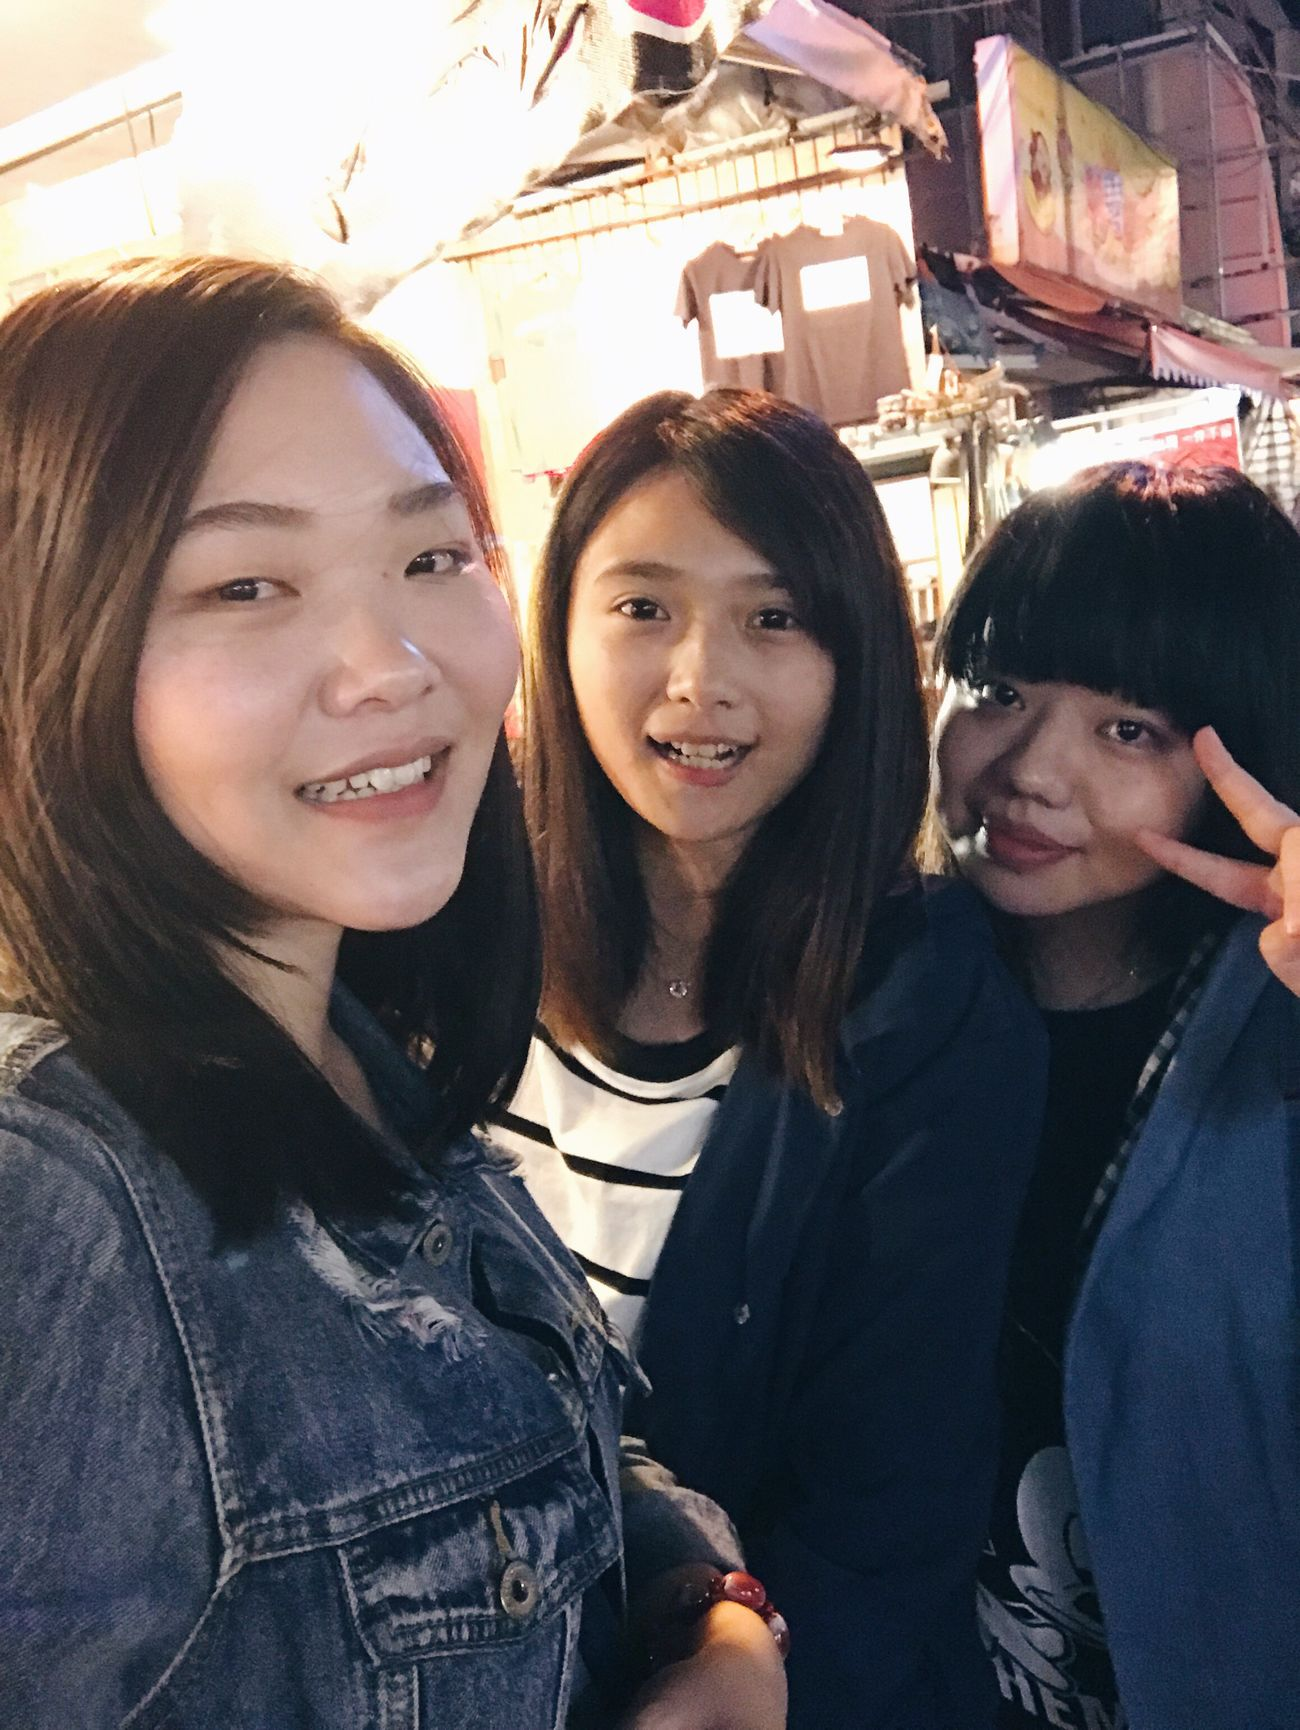 20161030 Happiness Friendship Young Women Taking Photos Happiness Hanging Out Relaxing Outdoors EyeEm Women Photography Vscocam VSCO Yolo Enjoying Life Beauty Kate's Daily Taiwan Hello World Nightmarket